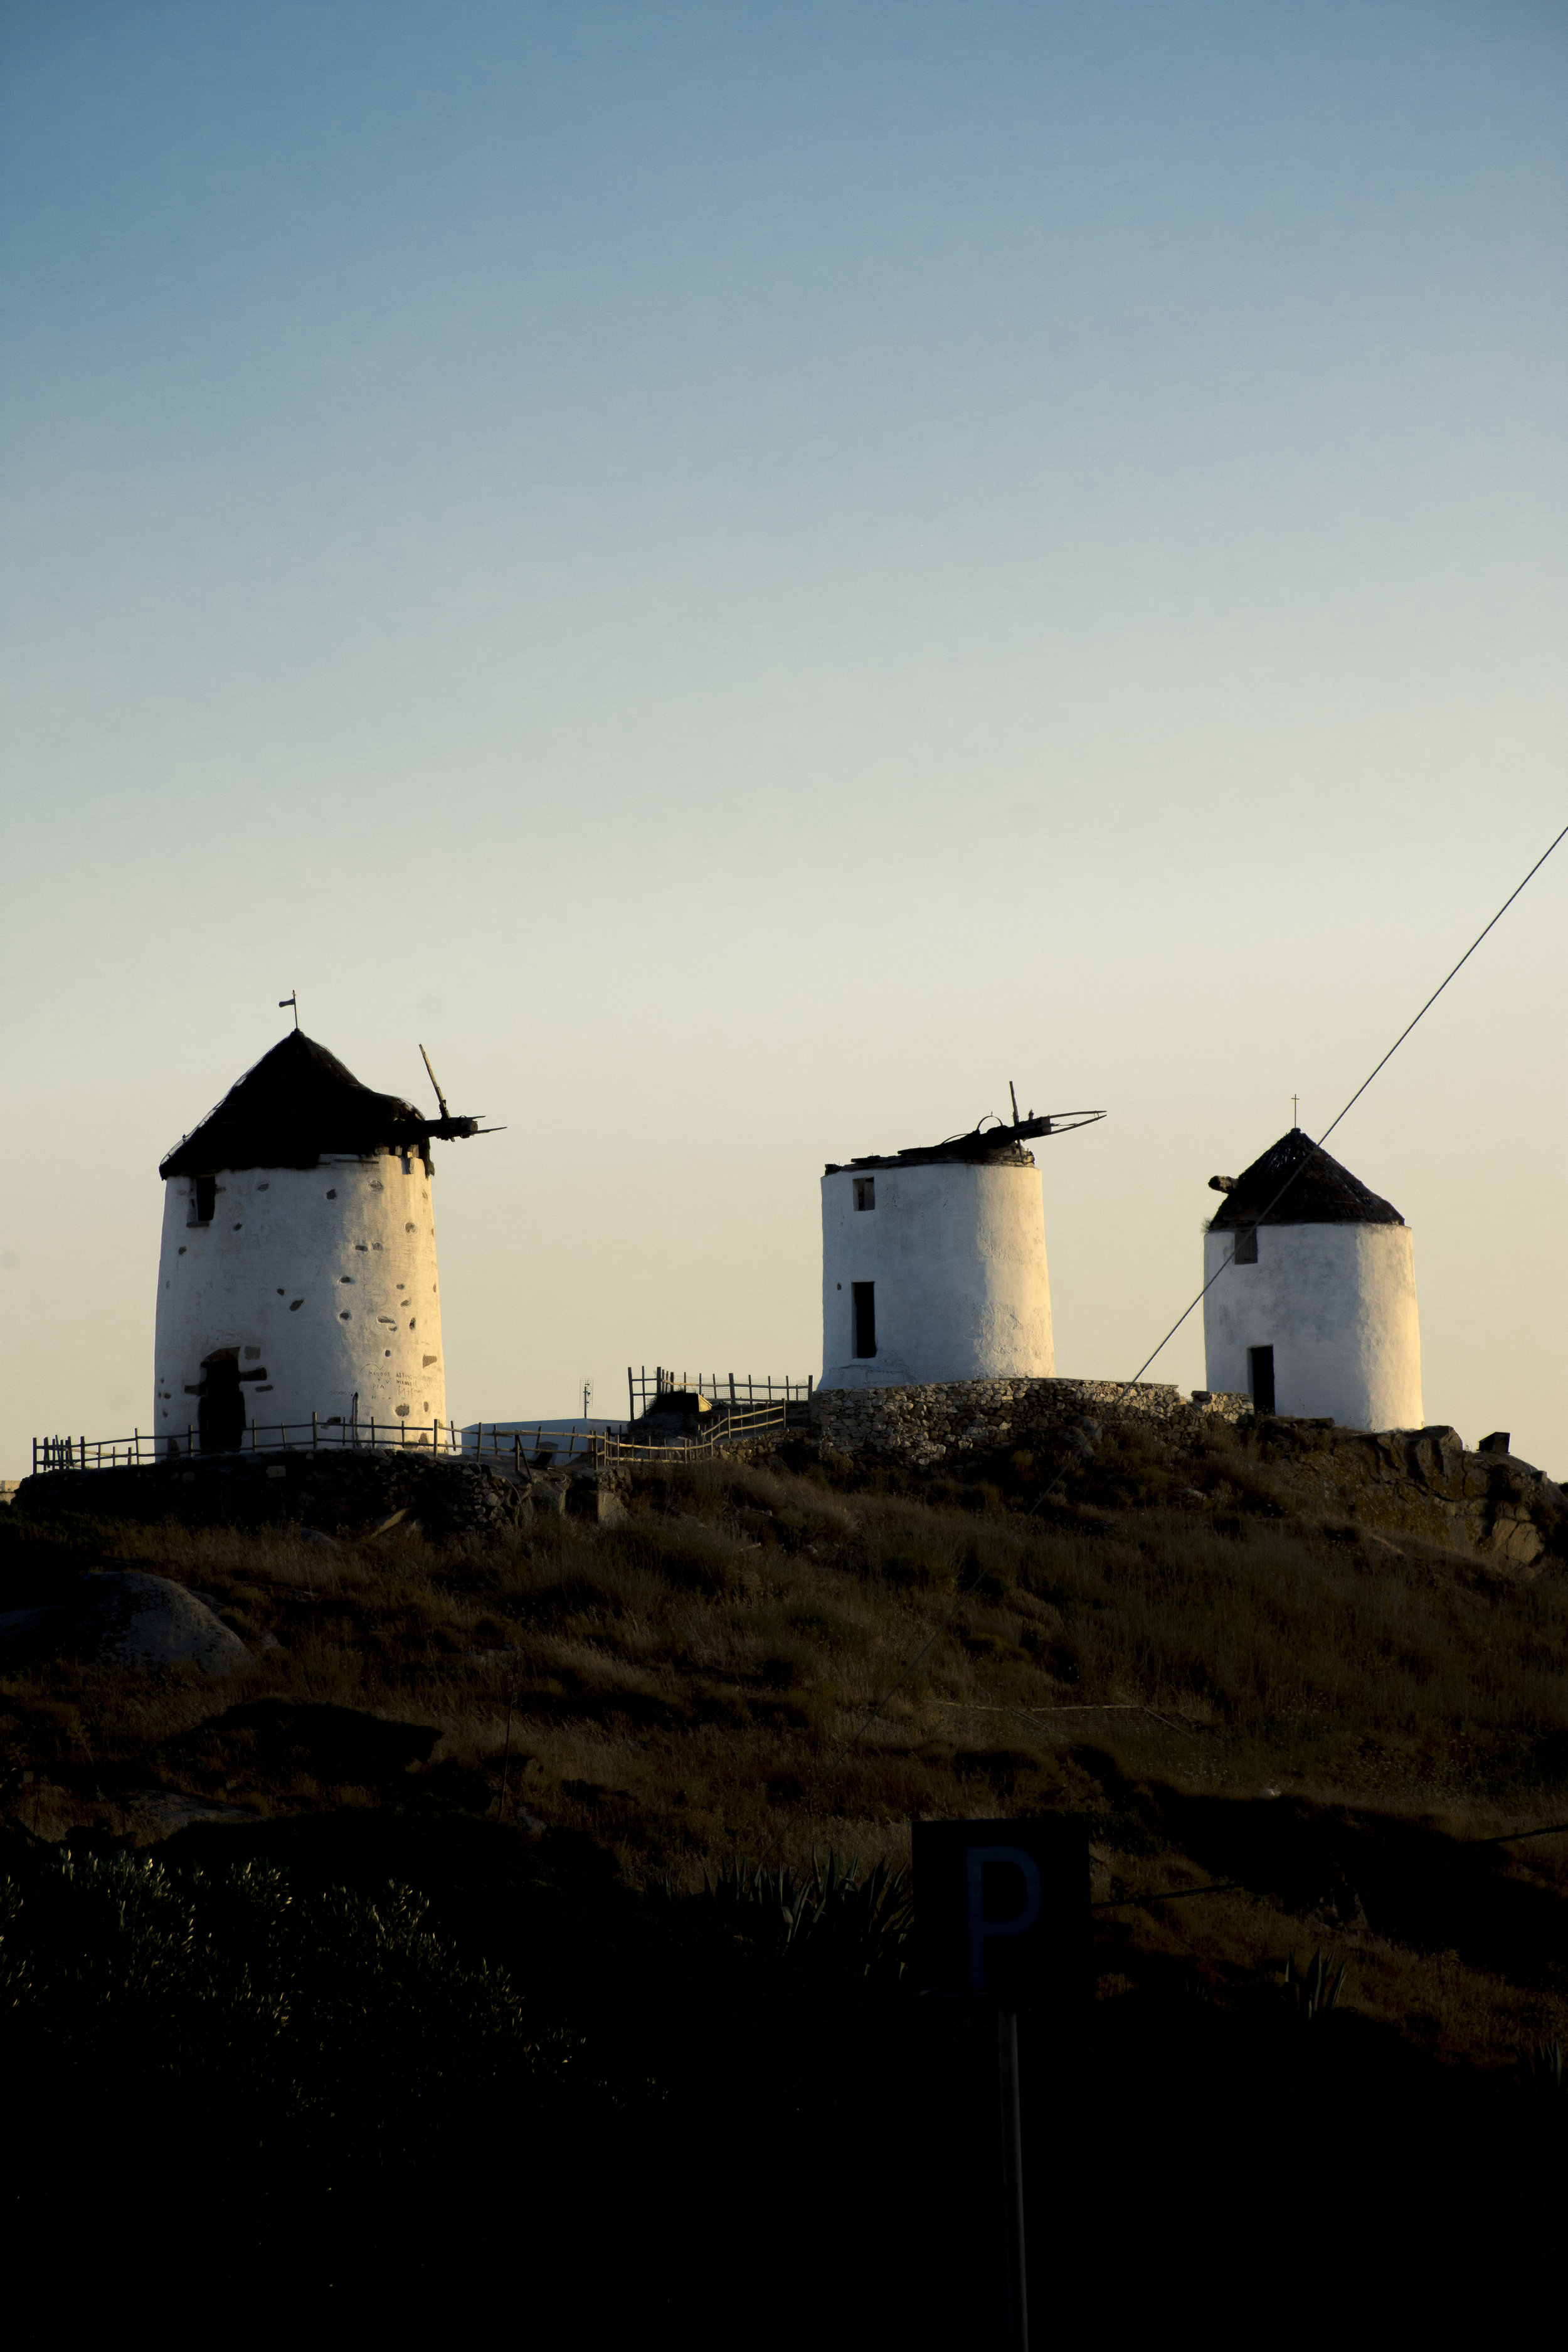 Little windmills and towers - The feeling of a lifestyle goneby